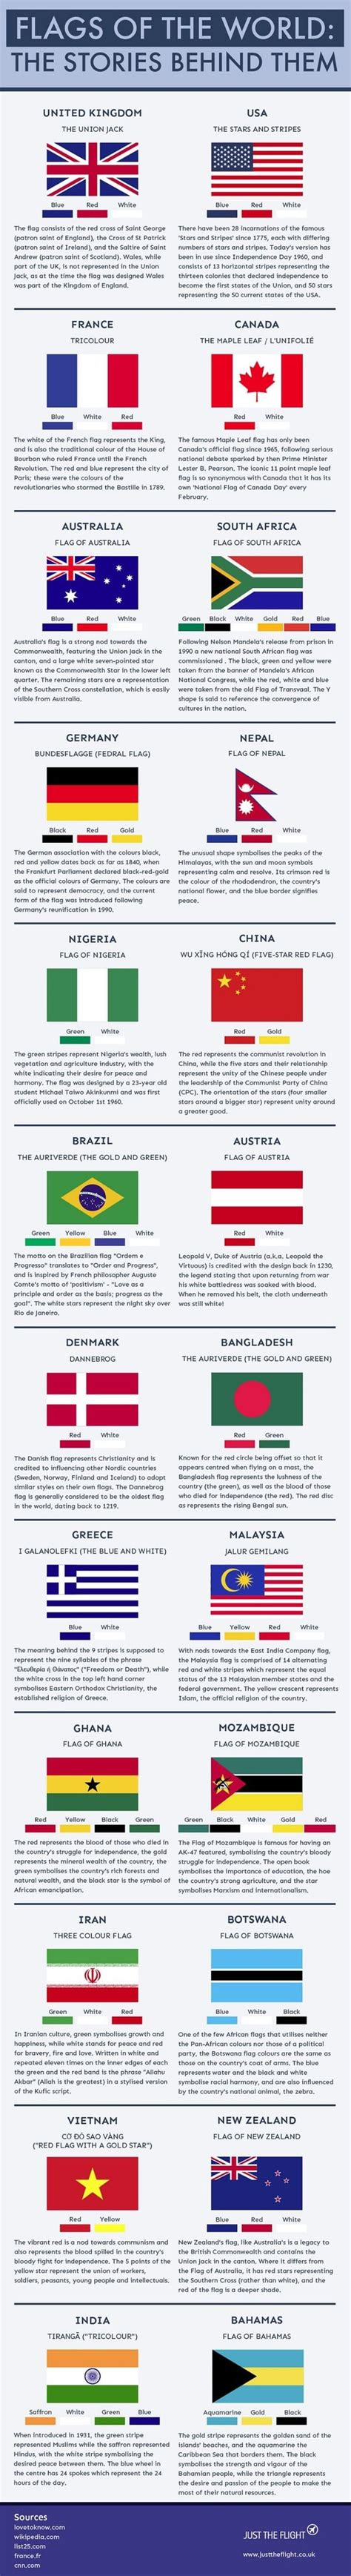 flags of the world meanings 24 flags of the world and the stories behind them